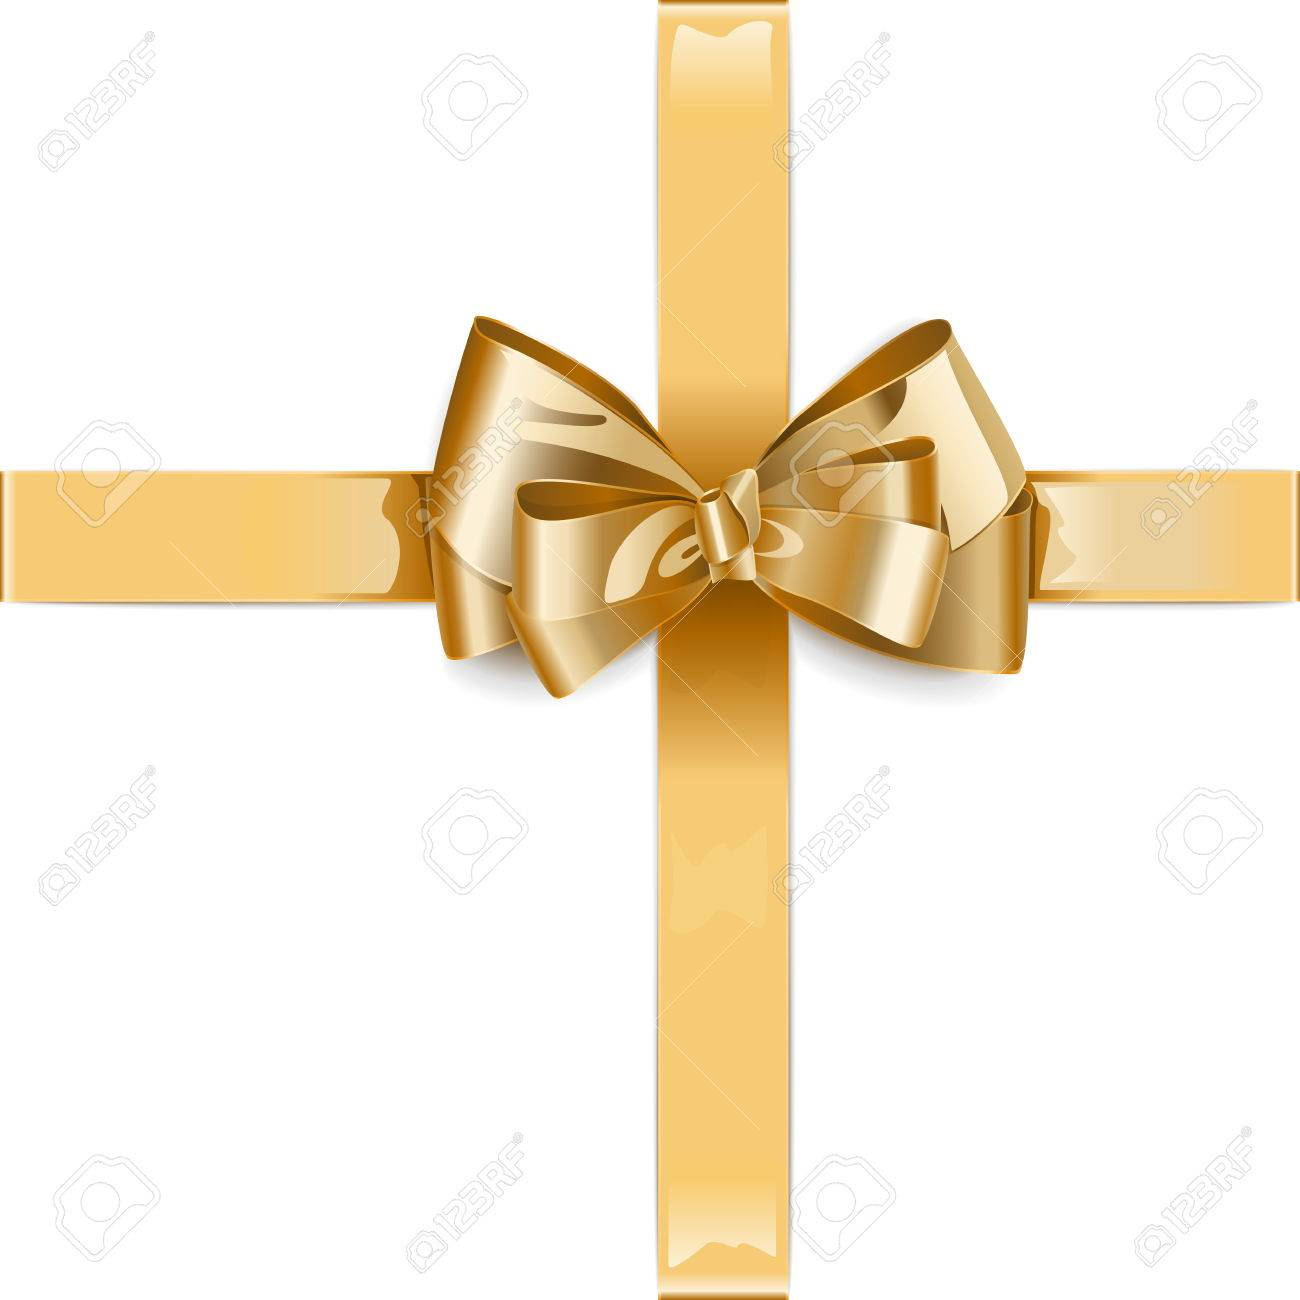 Vector Golden Ribbon with Bow isolated on white background - 48298384